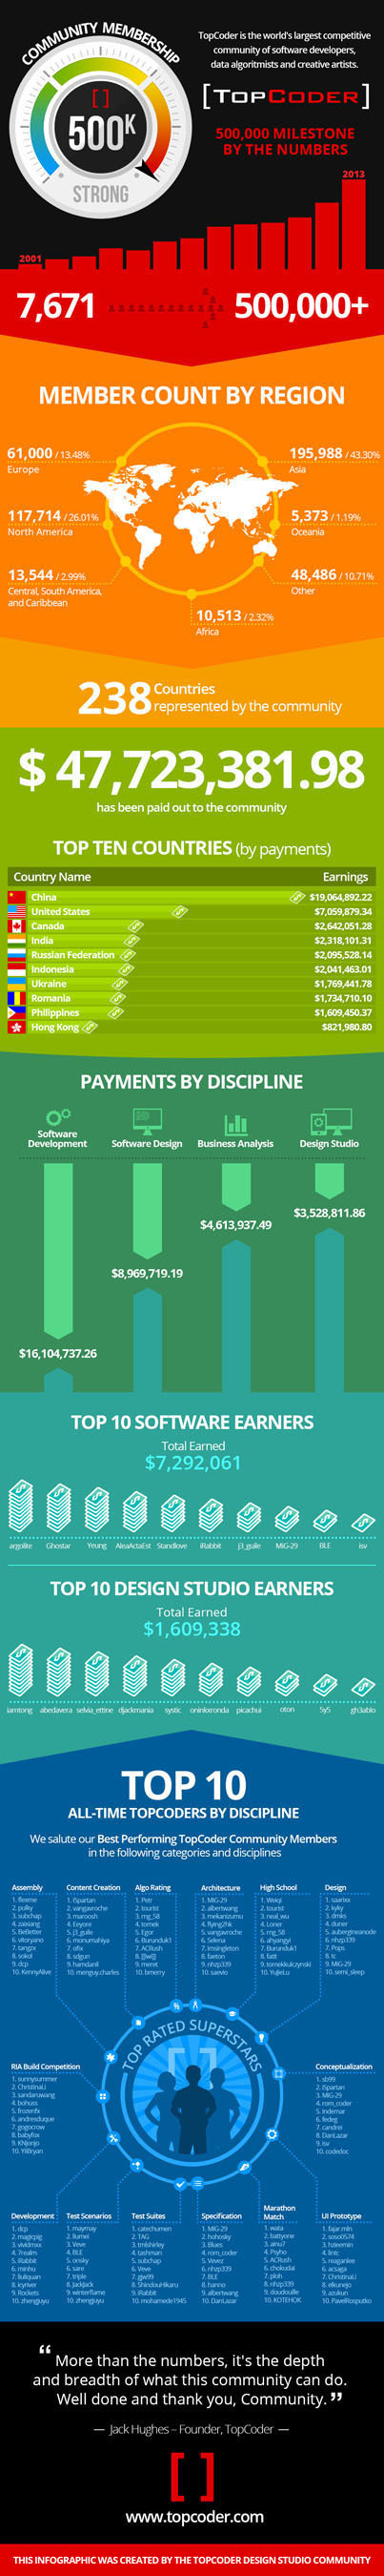 The TopCoder Community surpasses half a million members. This infographic was created by the TopCoder Design Studio Community.  (PRNewsFoto/TopCoder, Inc.)